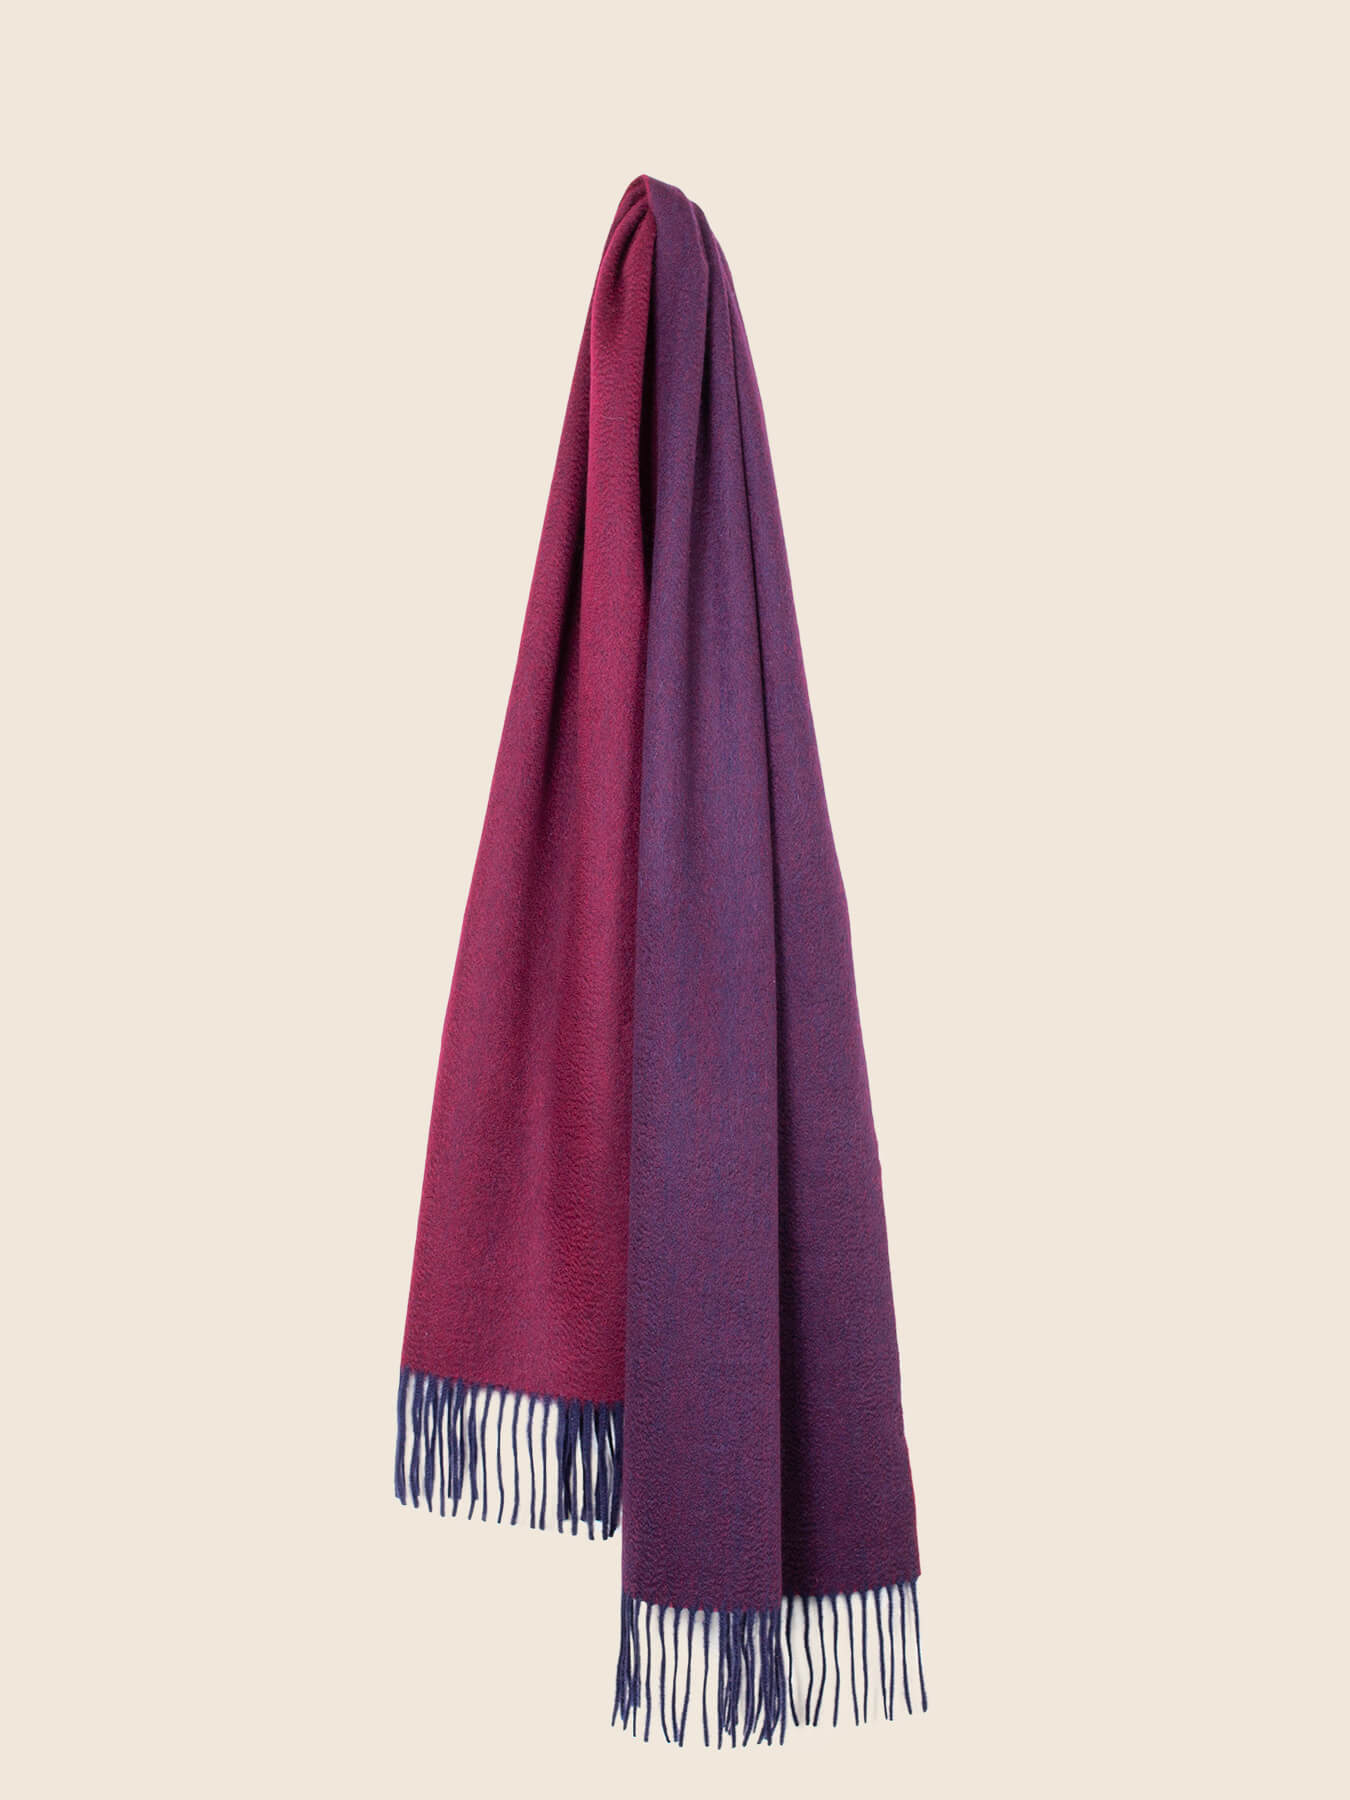 Two-Tone Reversible Cashmere Shawl Mulberry 2